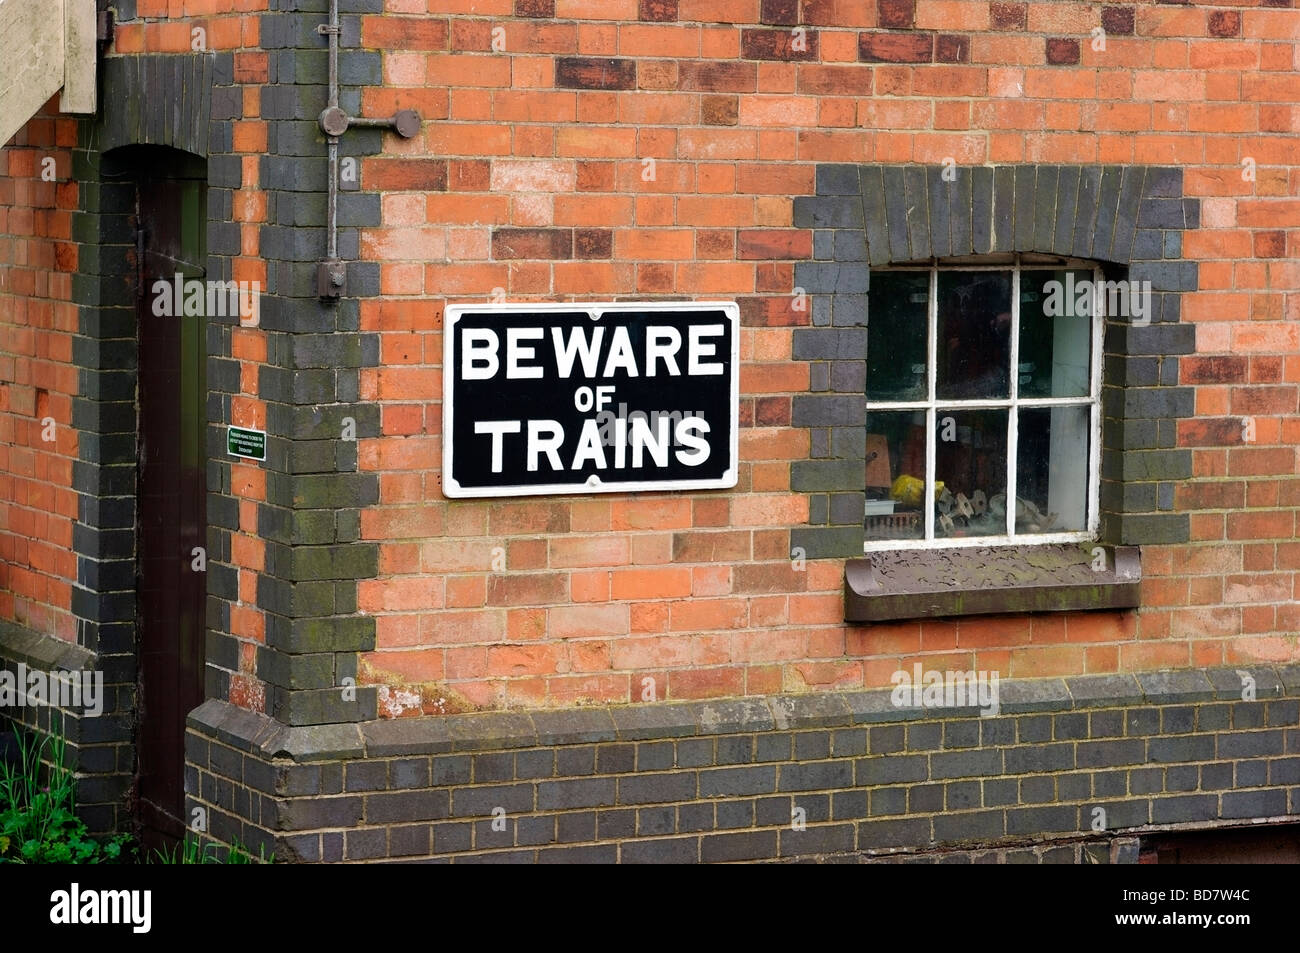 Beware of Trains sign - Stock Image